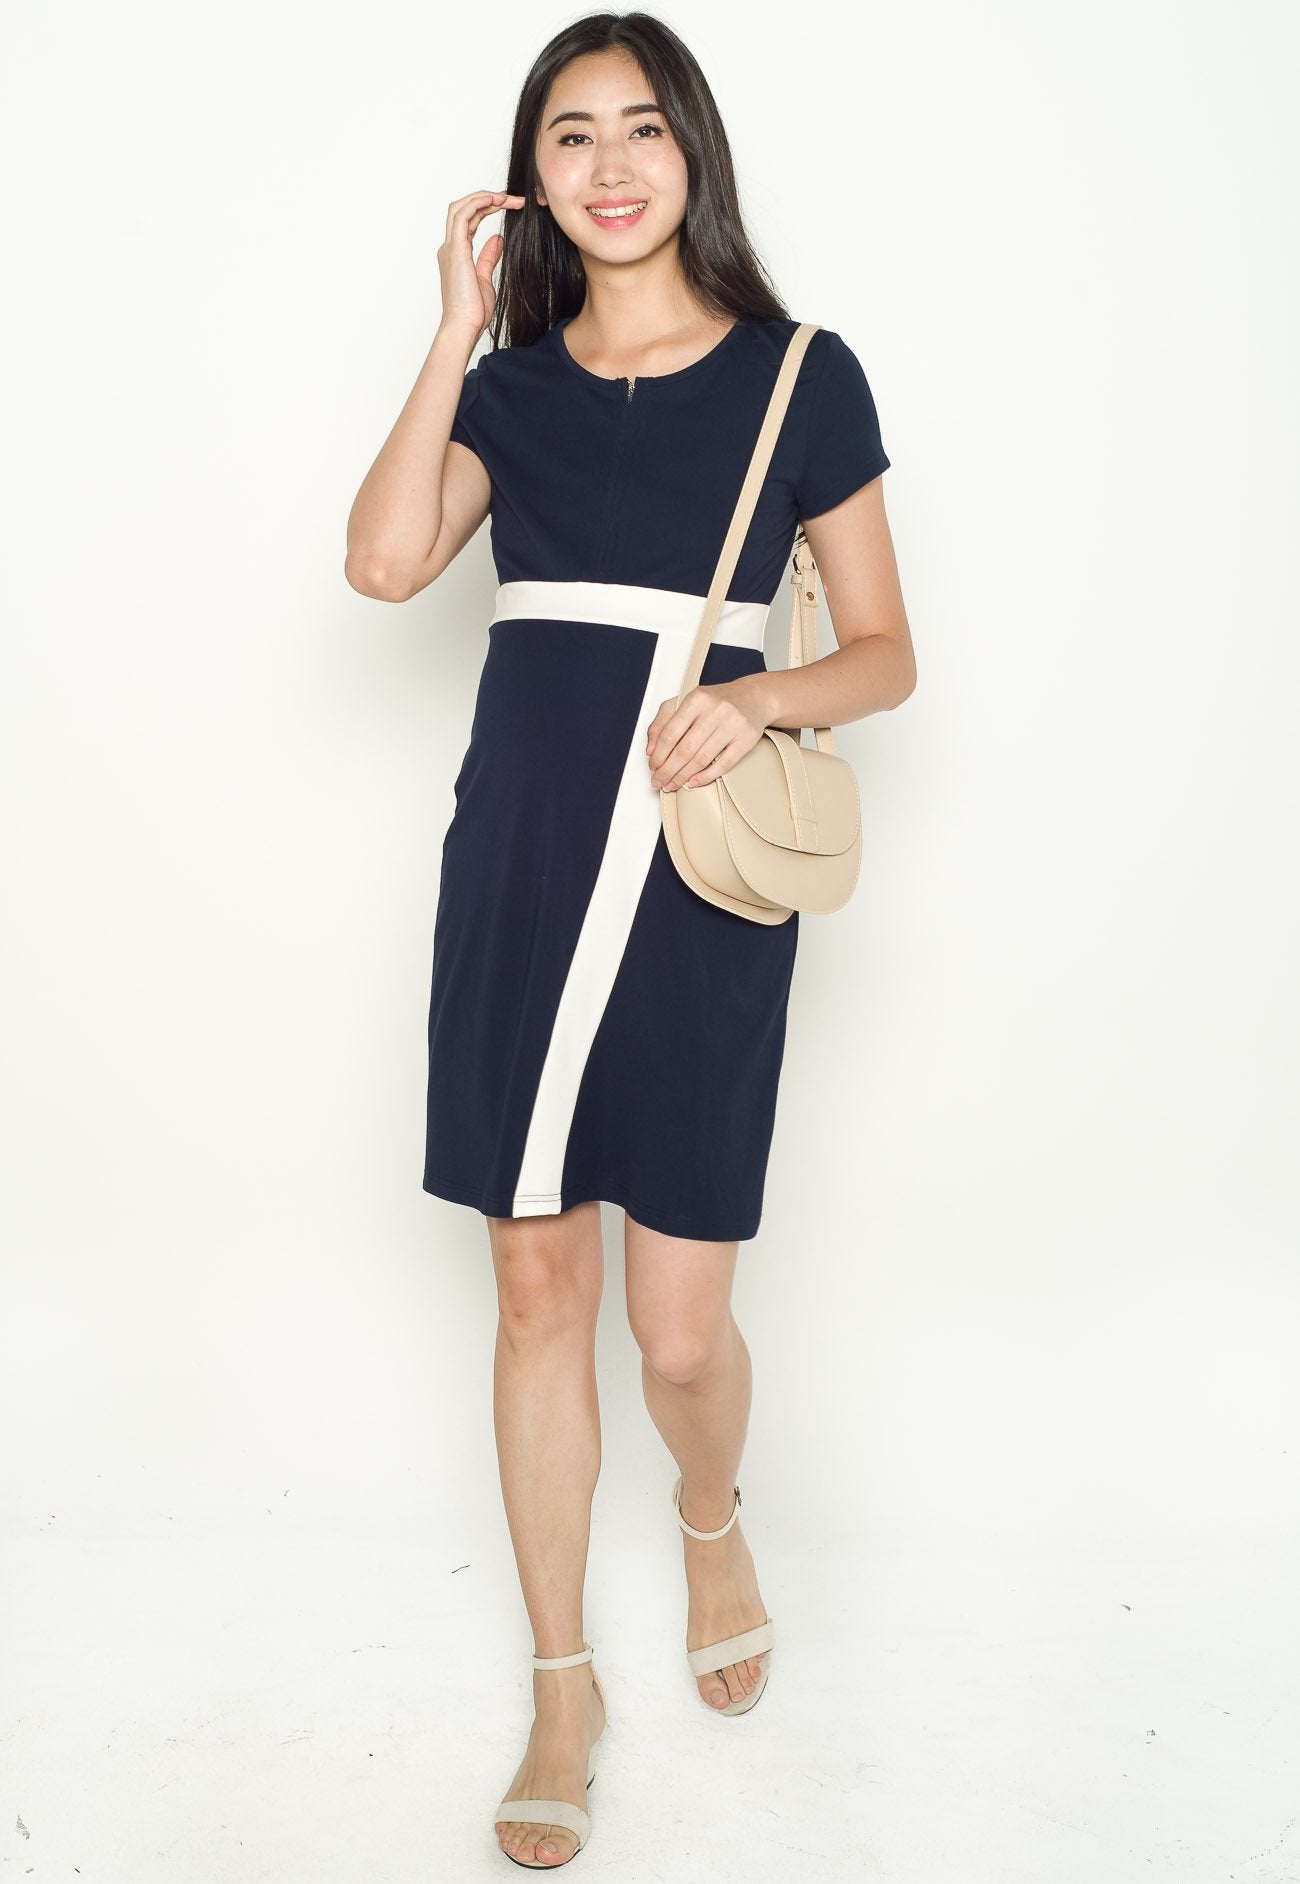 Brenda Color Block Nursing Dress in Navy  by Jump Eat Cry - Maternity and nursing wear